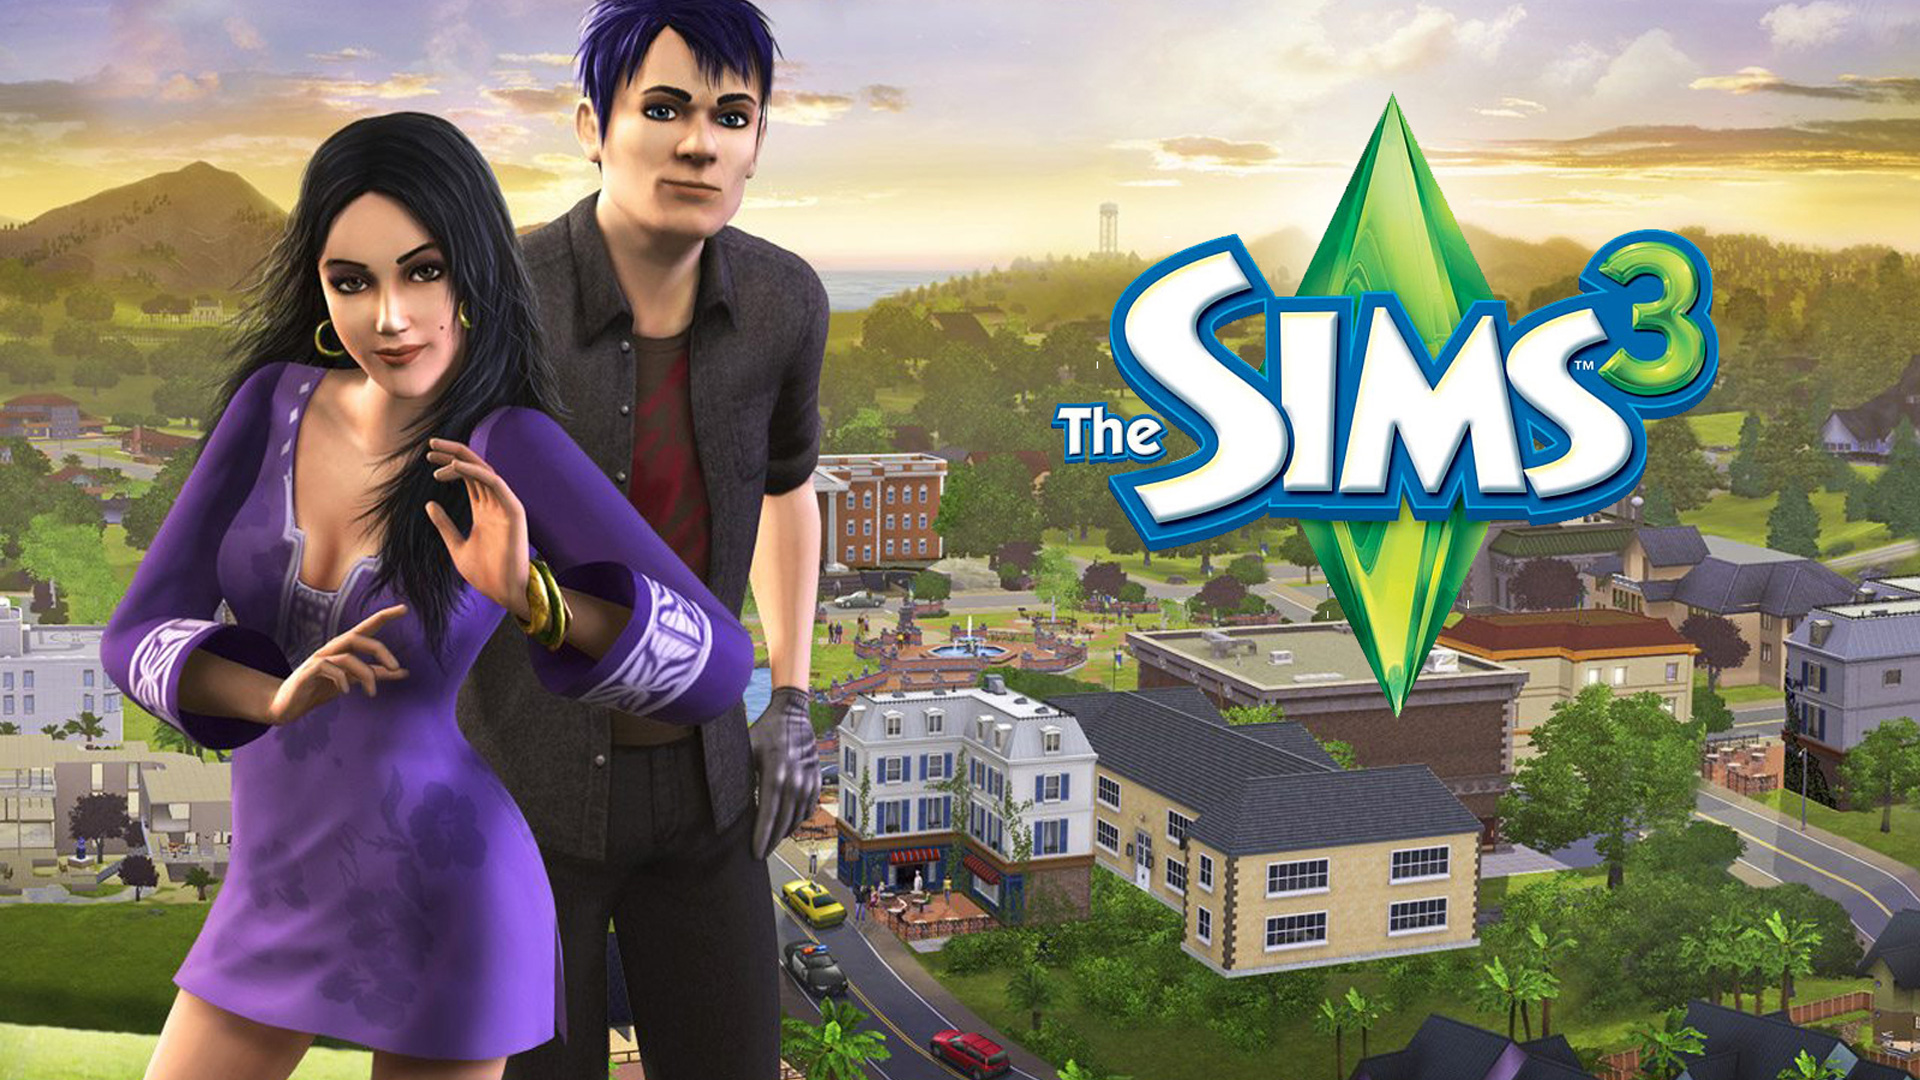 The Sims 3 Download Free [PC] - www.x-gamex.com